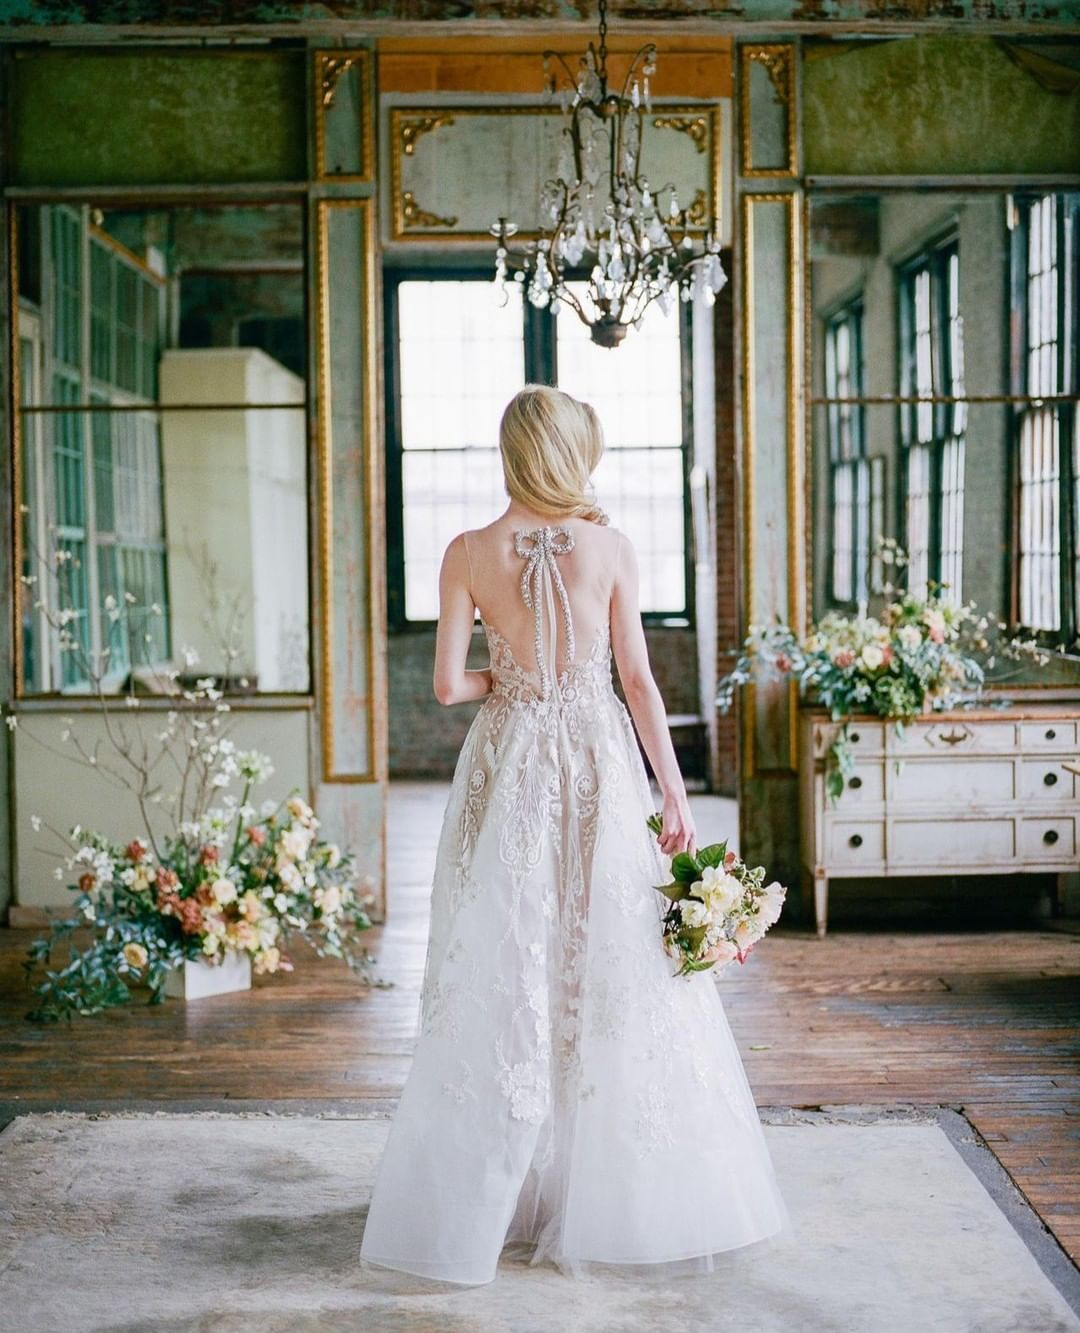 Sara Russell Wedding Sparrow On Instagram This Progressive Pop Of Embellishment Evokes Co Wedding Dresses Wedding Dresses Vintage Wedding Dresses Simple